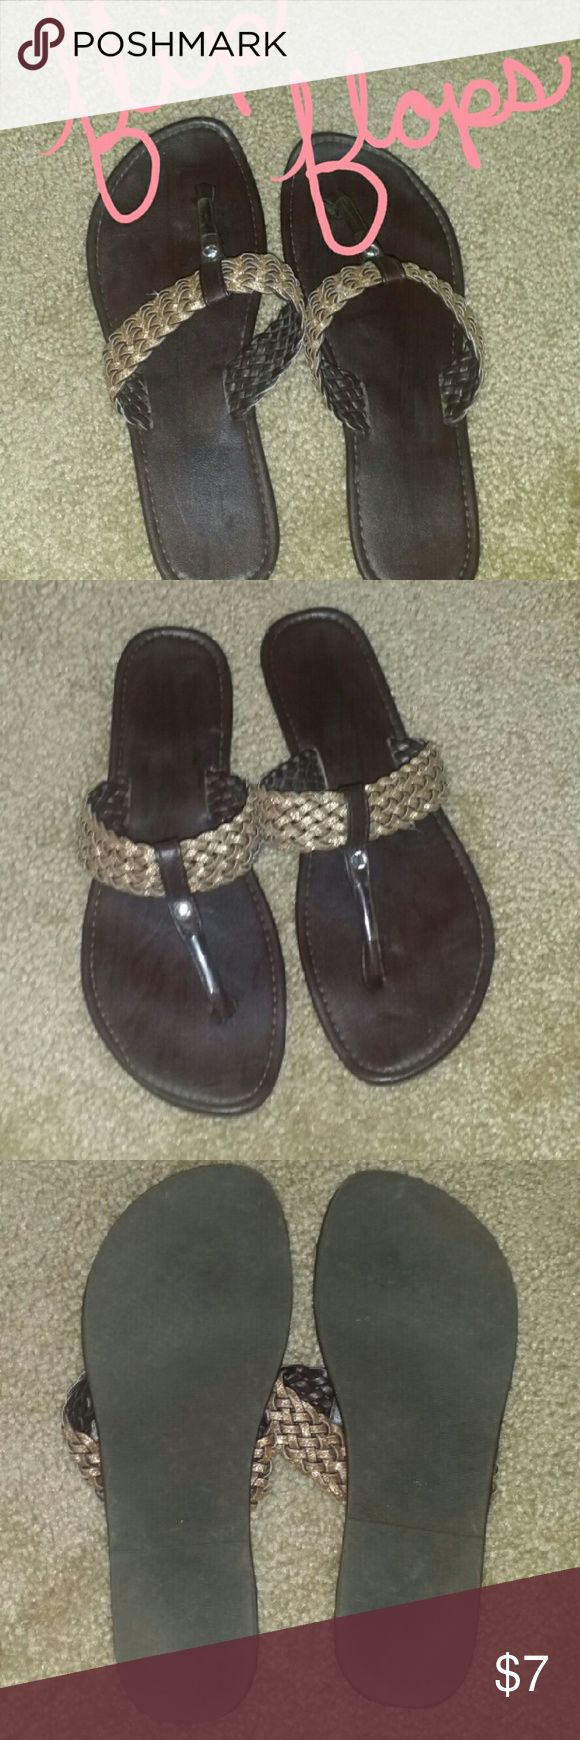 JCPenny flip flops Great condition.  Dark brown with braided glitter straps.  ❌trades   ❤ships within 3 business days   😁free gift while supplies last jcpenney Shoes Sandals